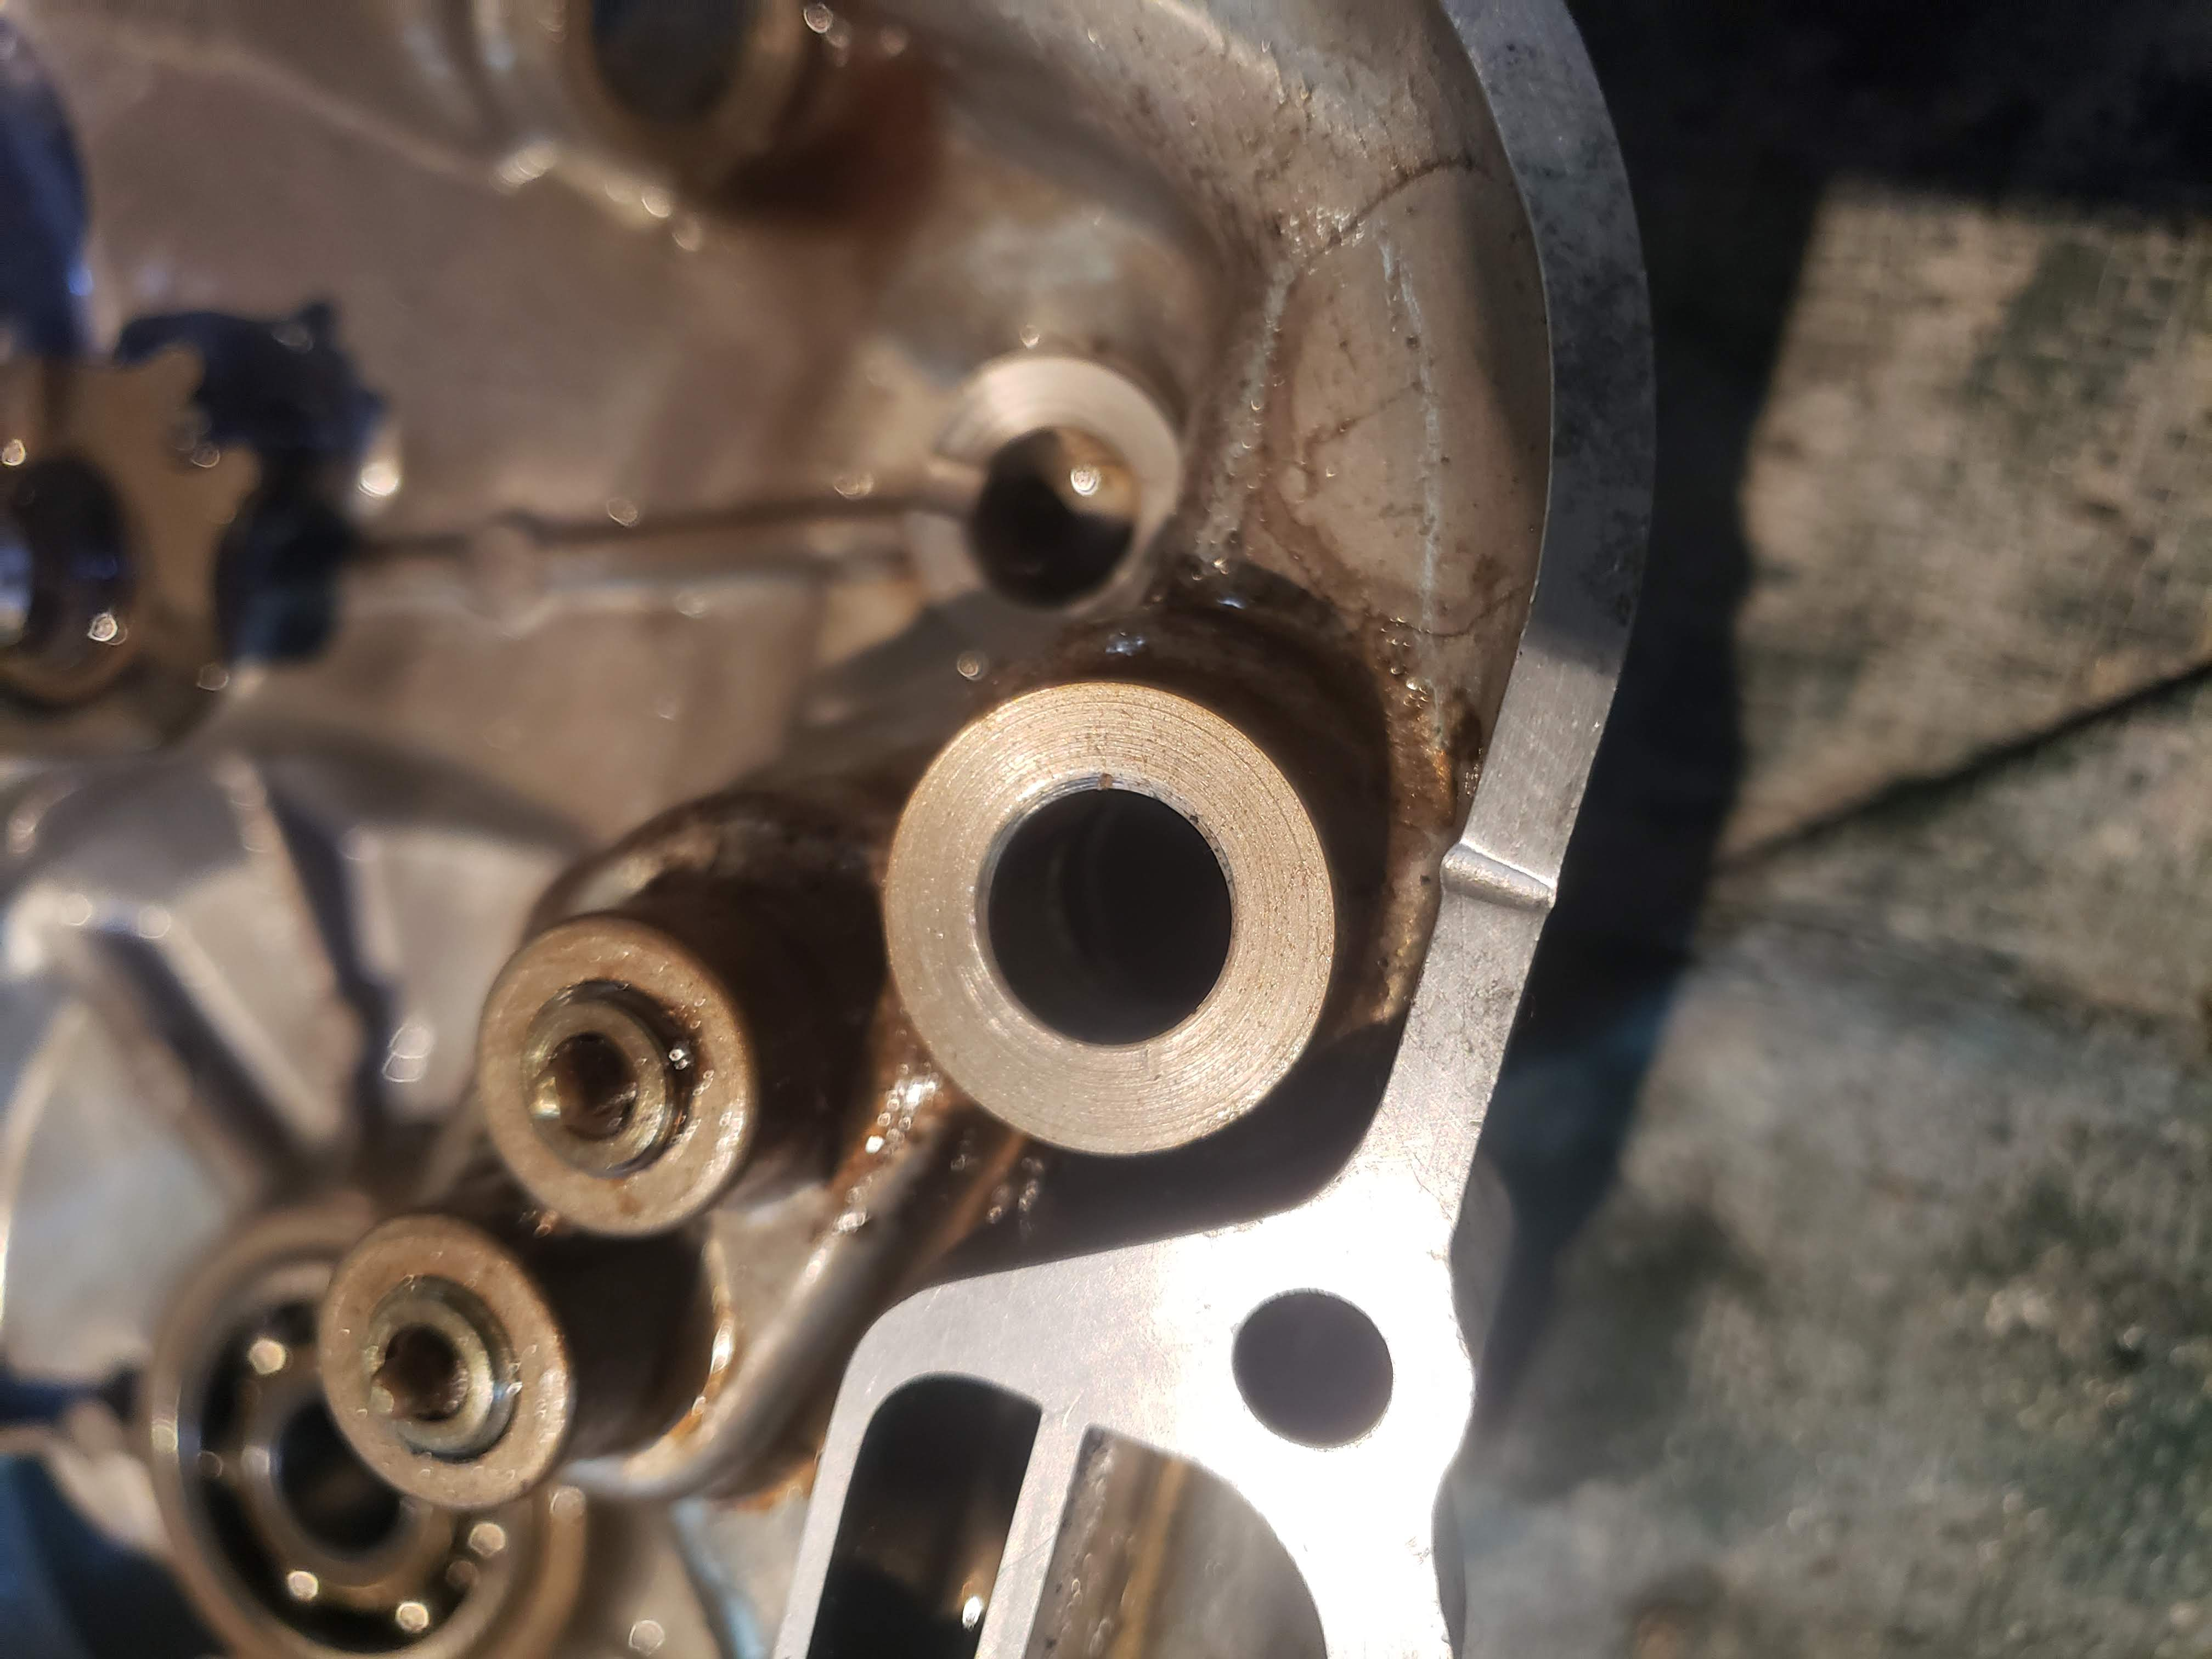 Stripped out oil drain... now what?-20190712_164527.jpg